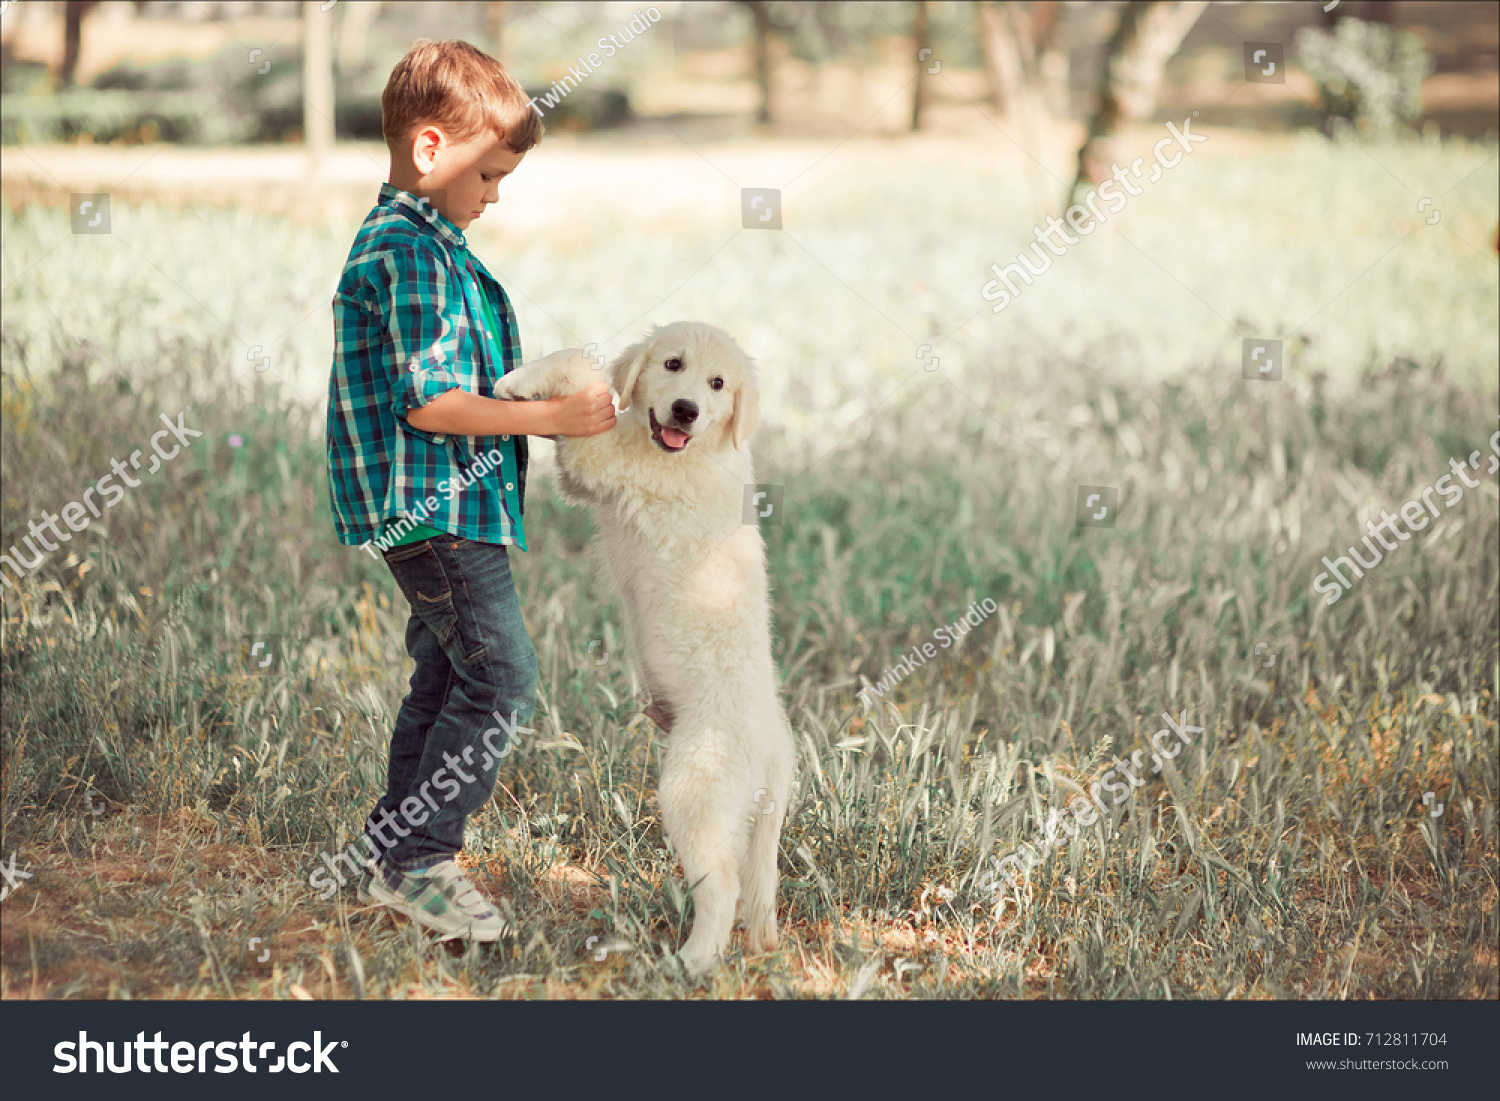 Cute handsome boy teen with blue eyes playing outdoor amazing white pink  labrador retriever puppy enjoying